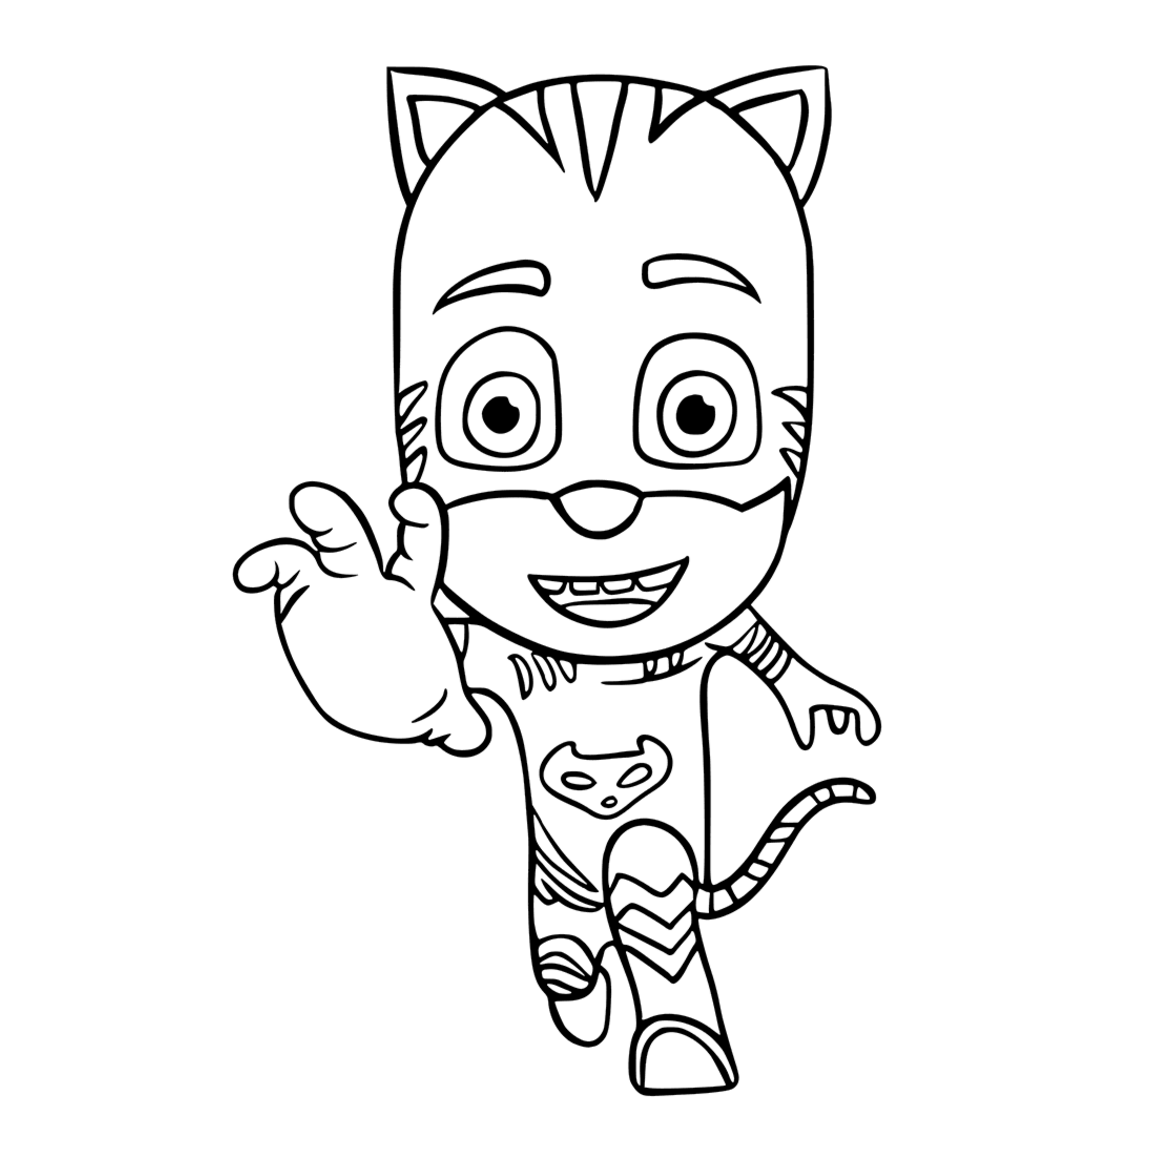 Pj masks coloring pages best coloring pages for kids Coloring book